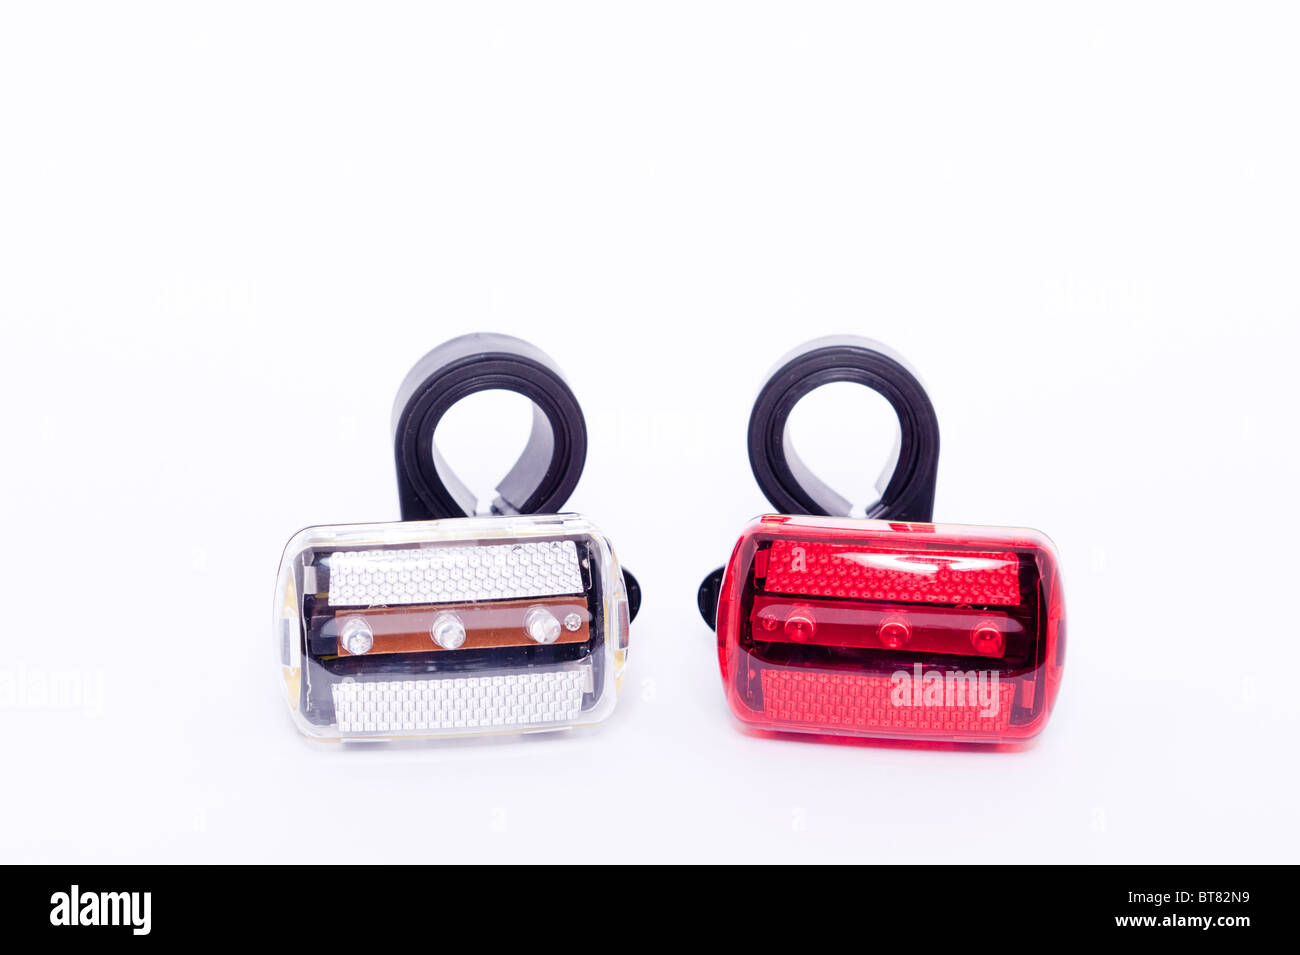 A close up photo of a pair of bicycle lights against a white background - Stock Image